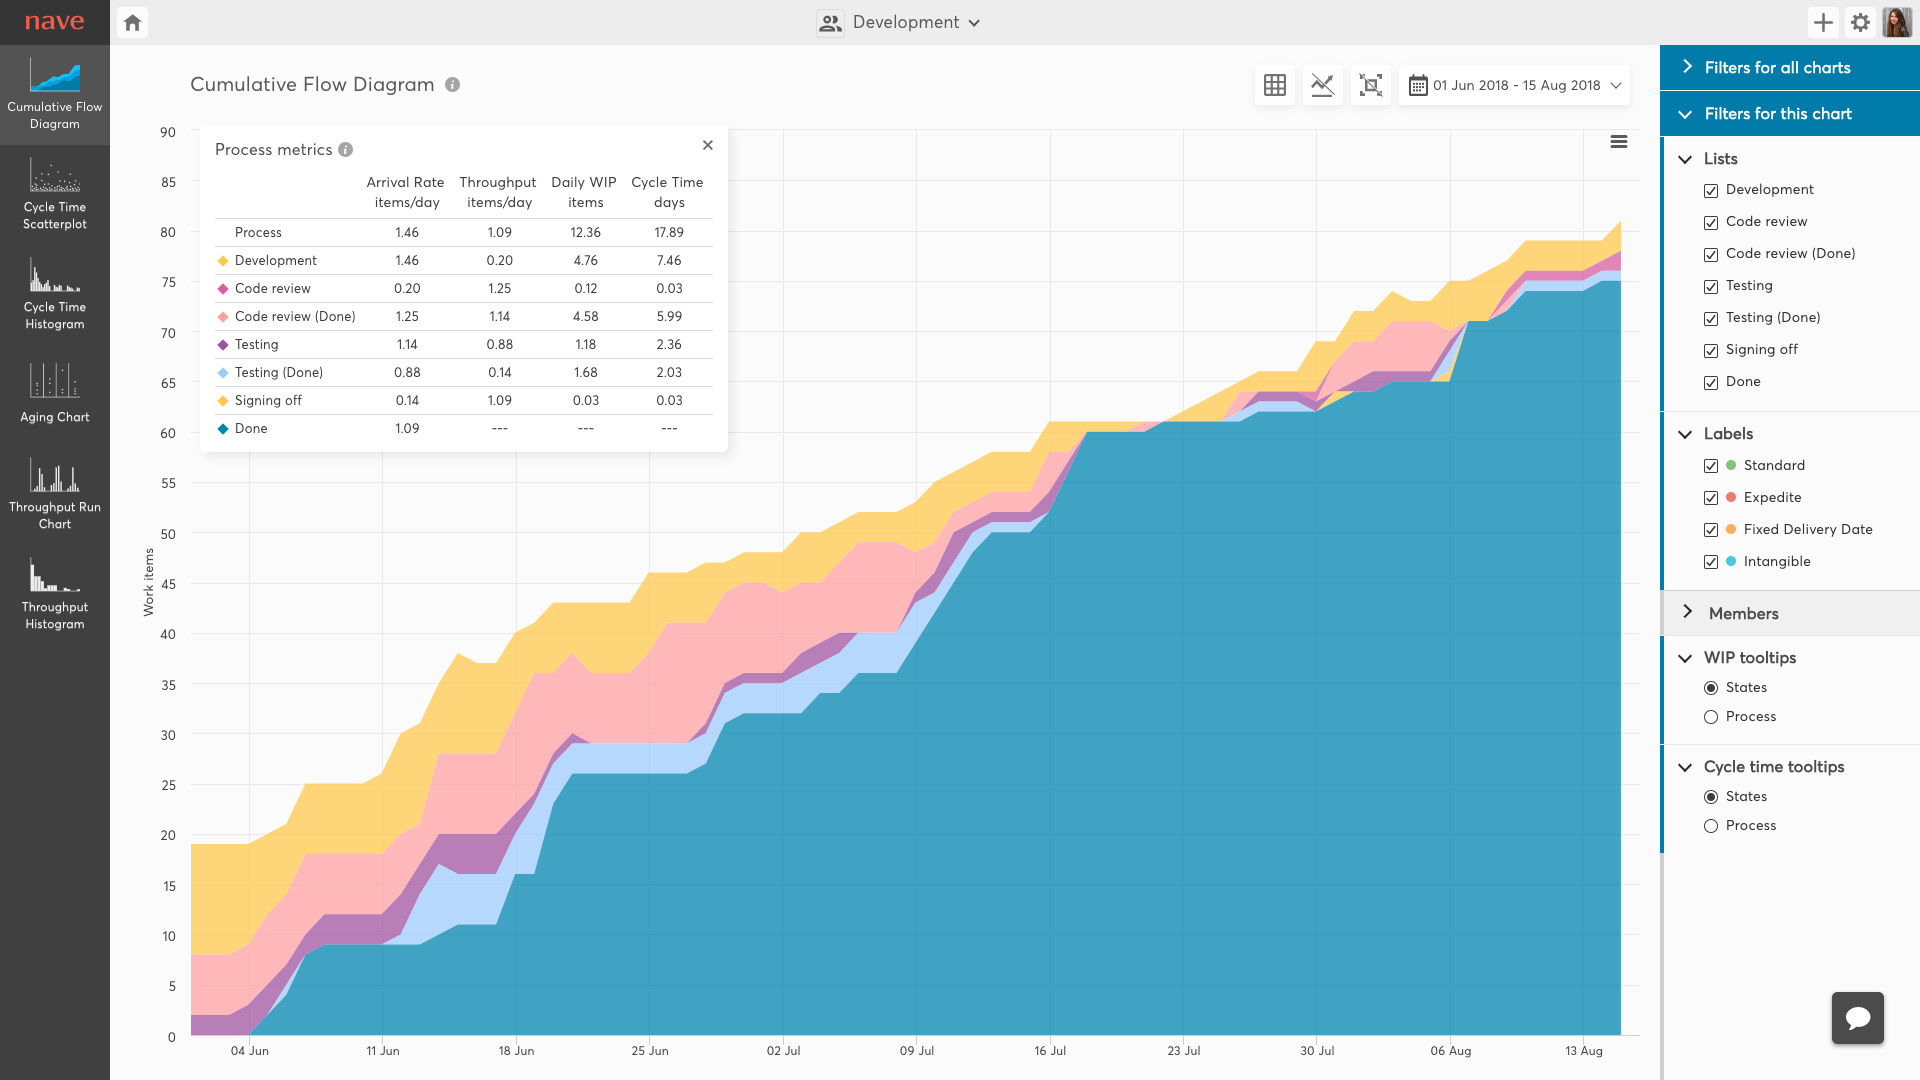 Cumulative flow diagram with queue states